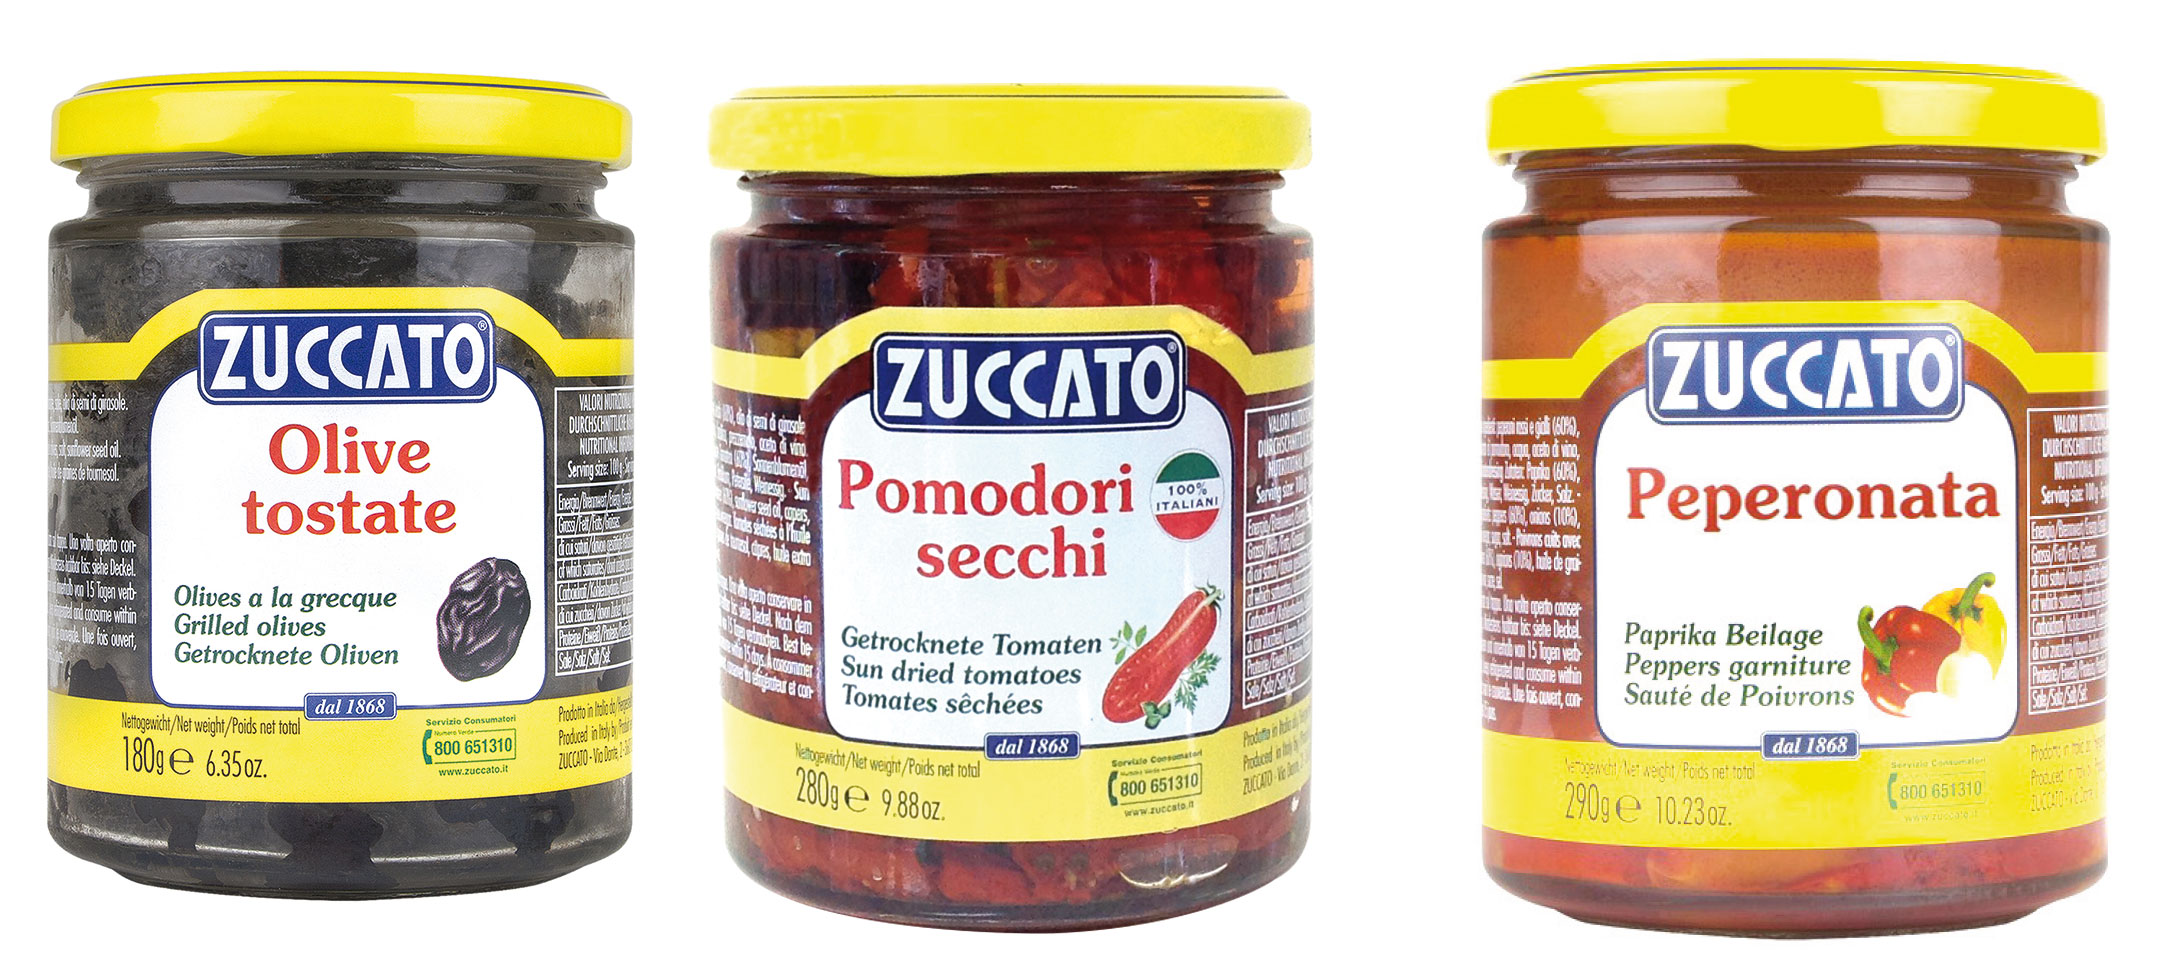 Zuccato Specialties 314ml